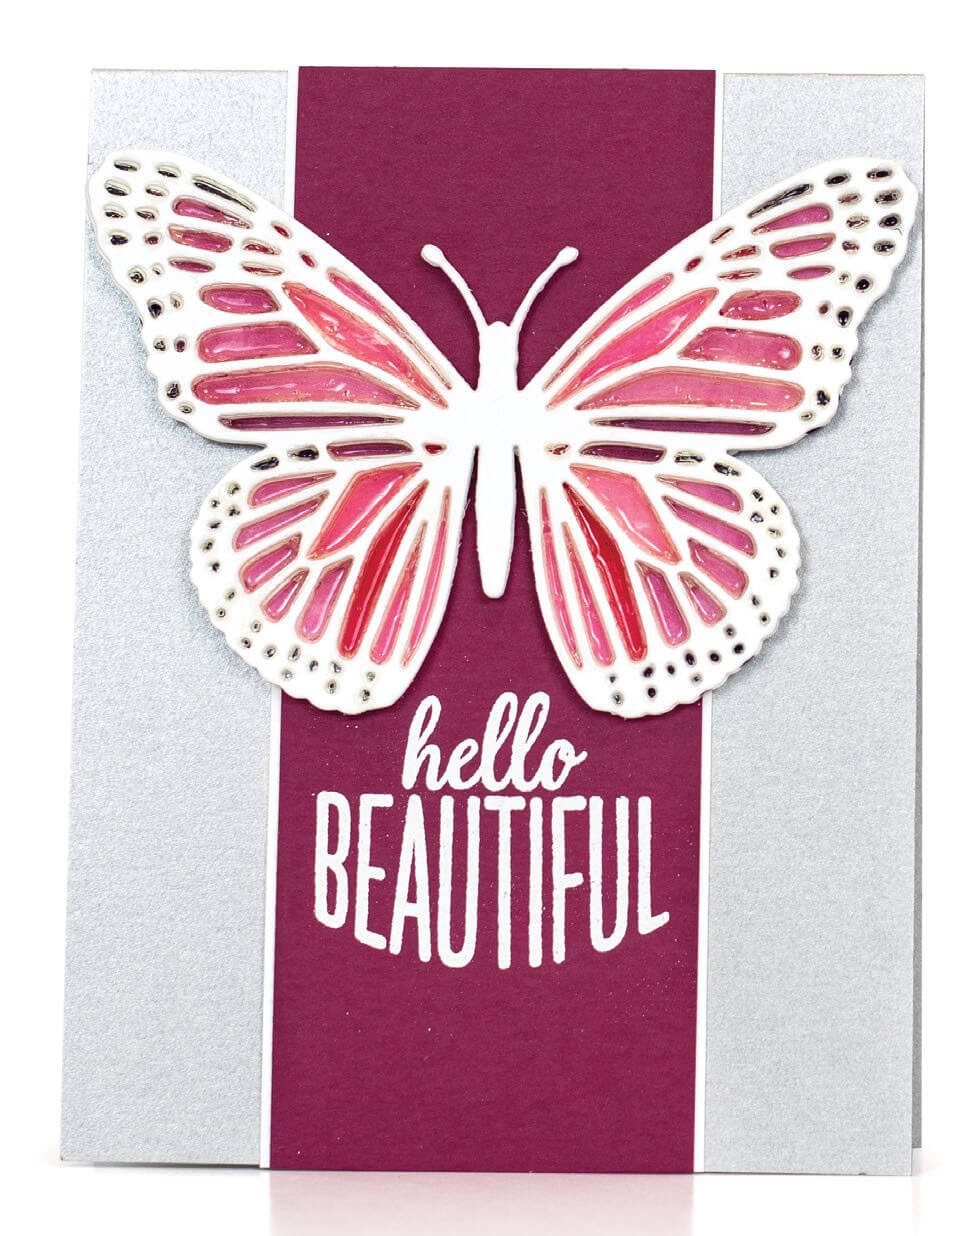 Scrapbook & Cards Today - Spring 2020 - Hello Beautiful card by Jennifer McGuire